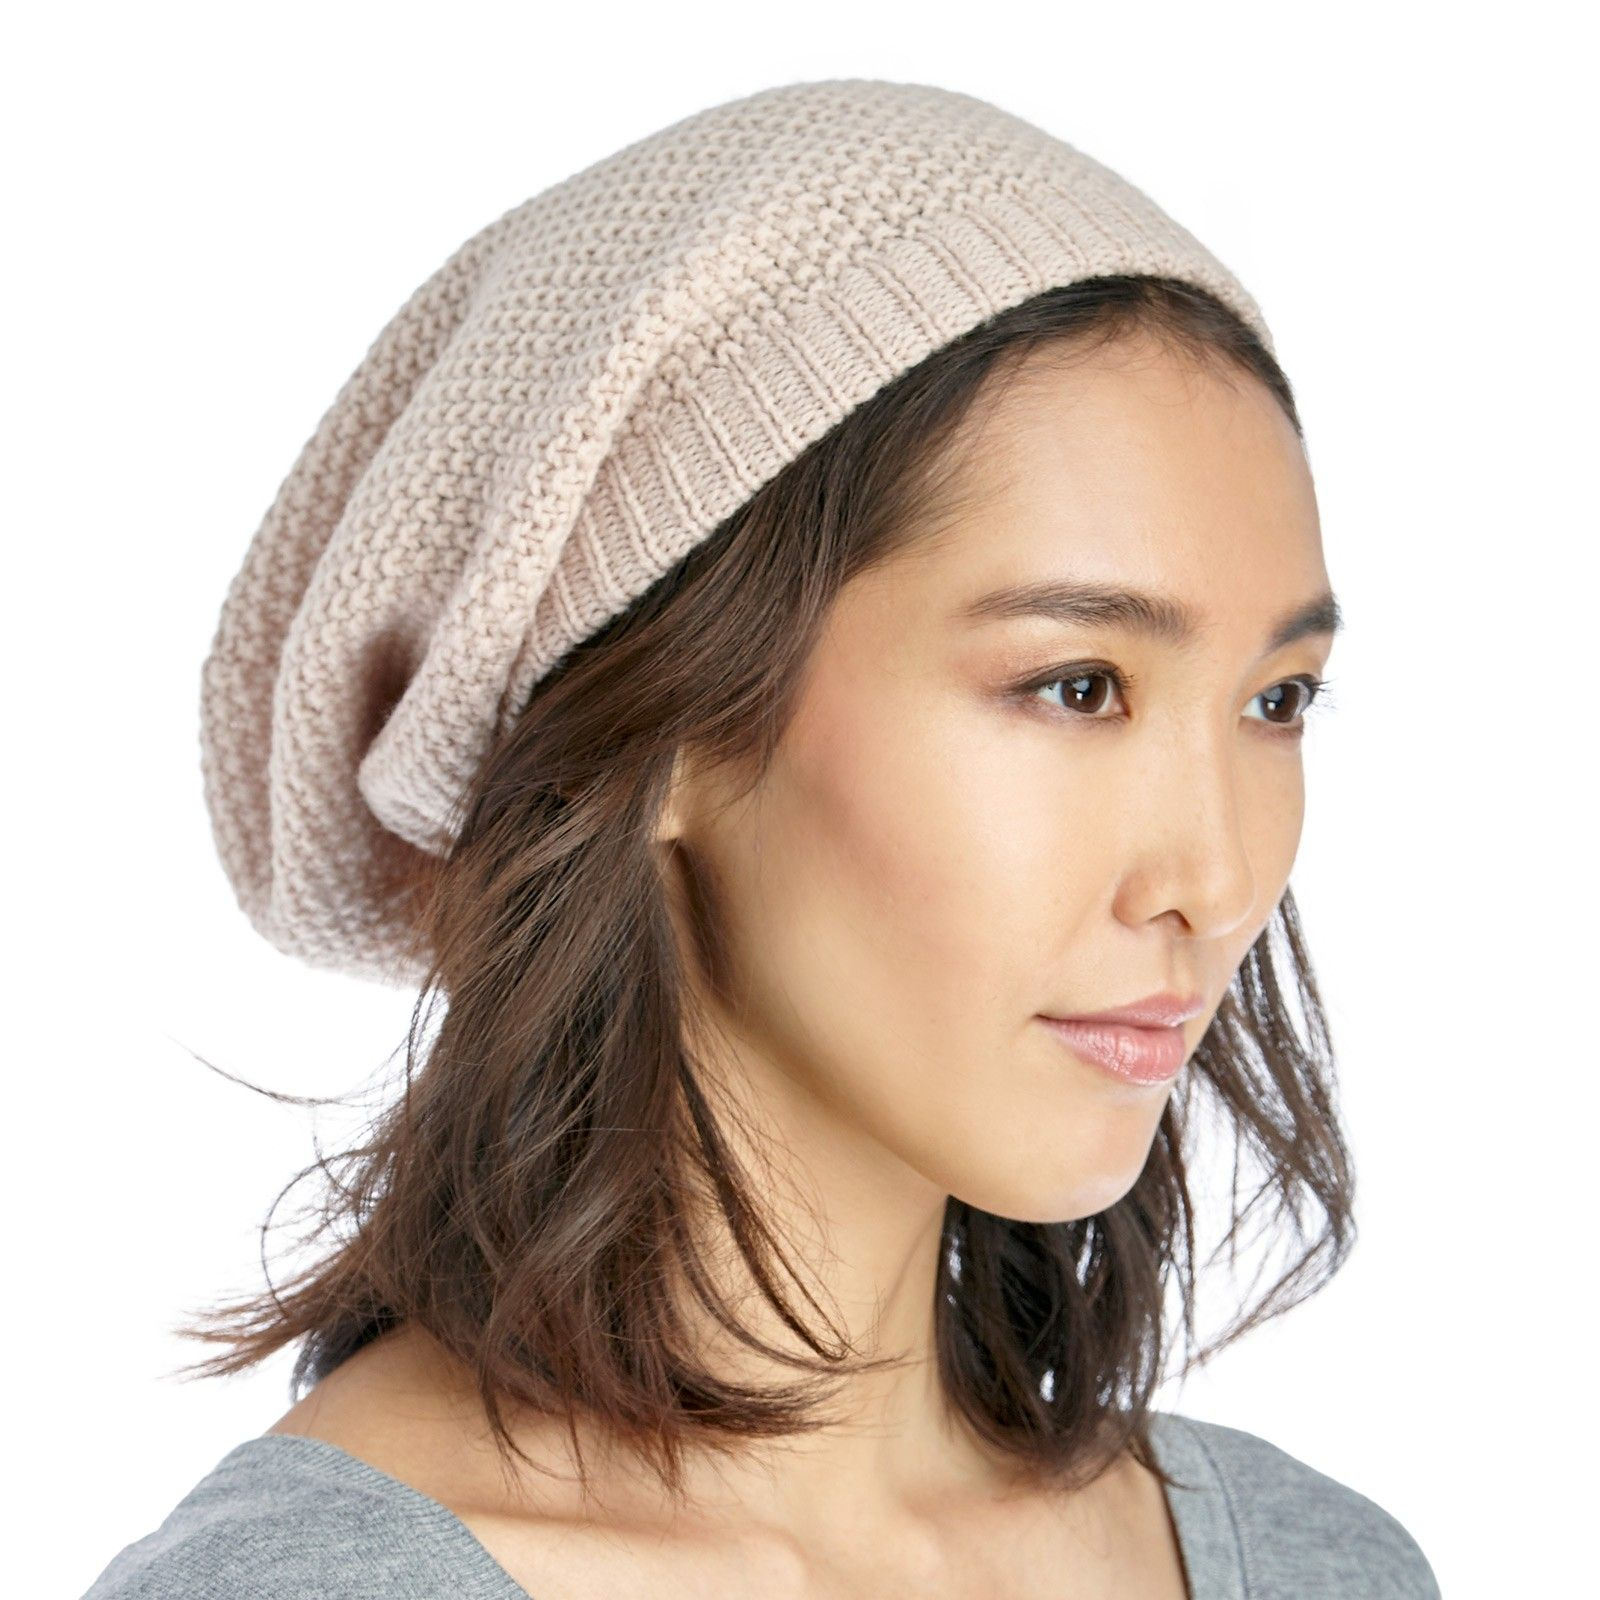 5ec02410c72 slouchy wool beanie - Natural-one size